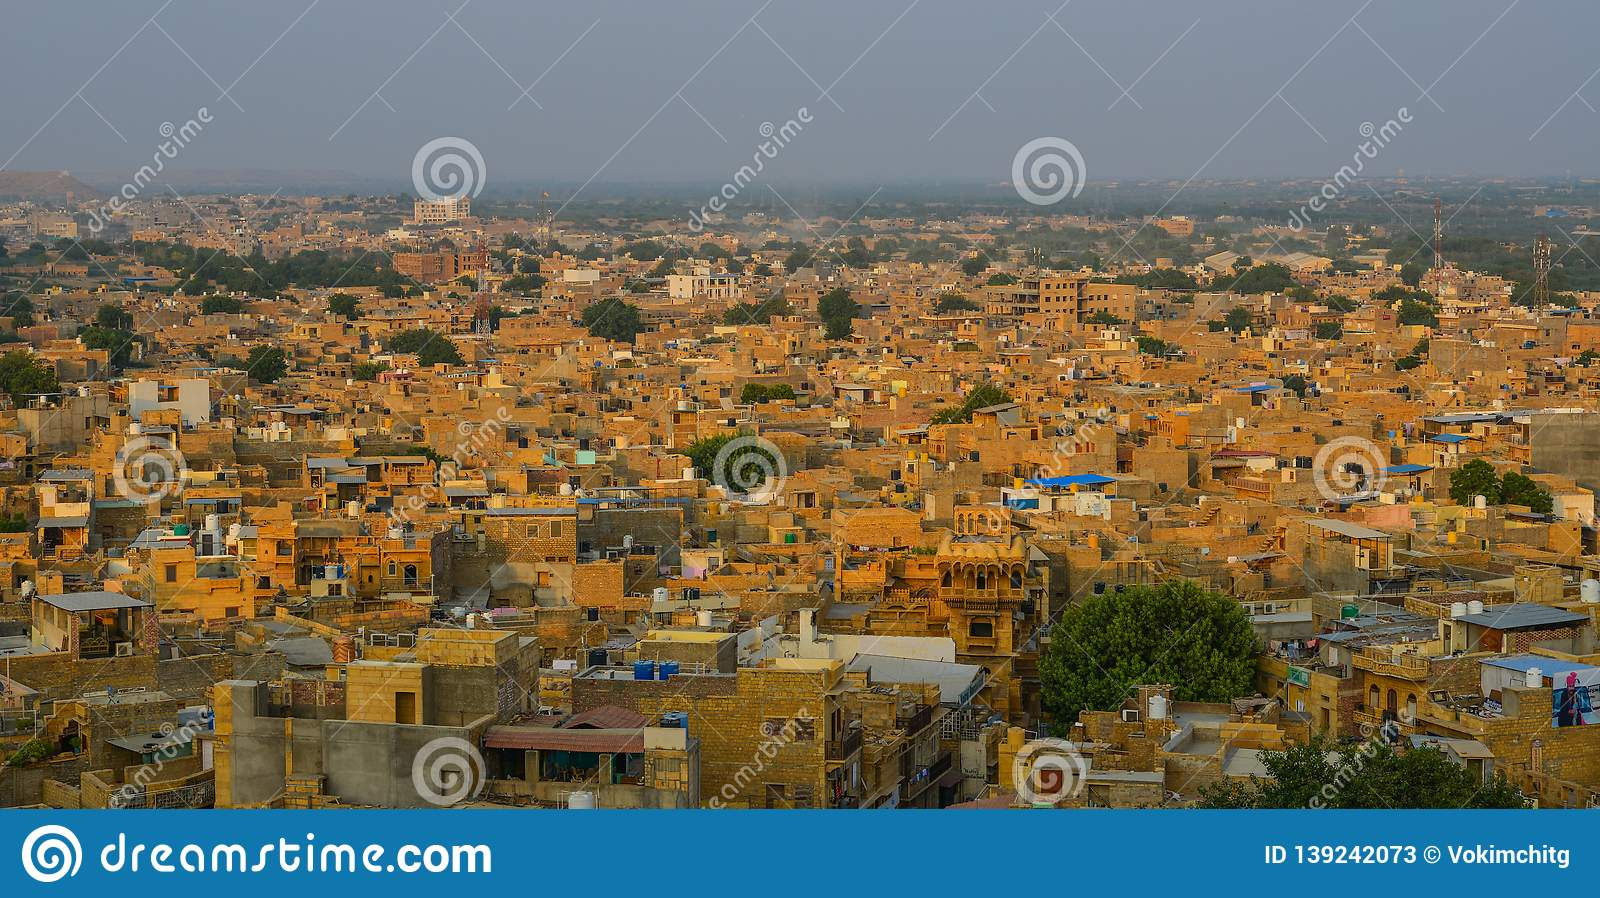 Old Buildings In Jaisalmer, India Editorial Stock Photo